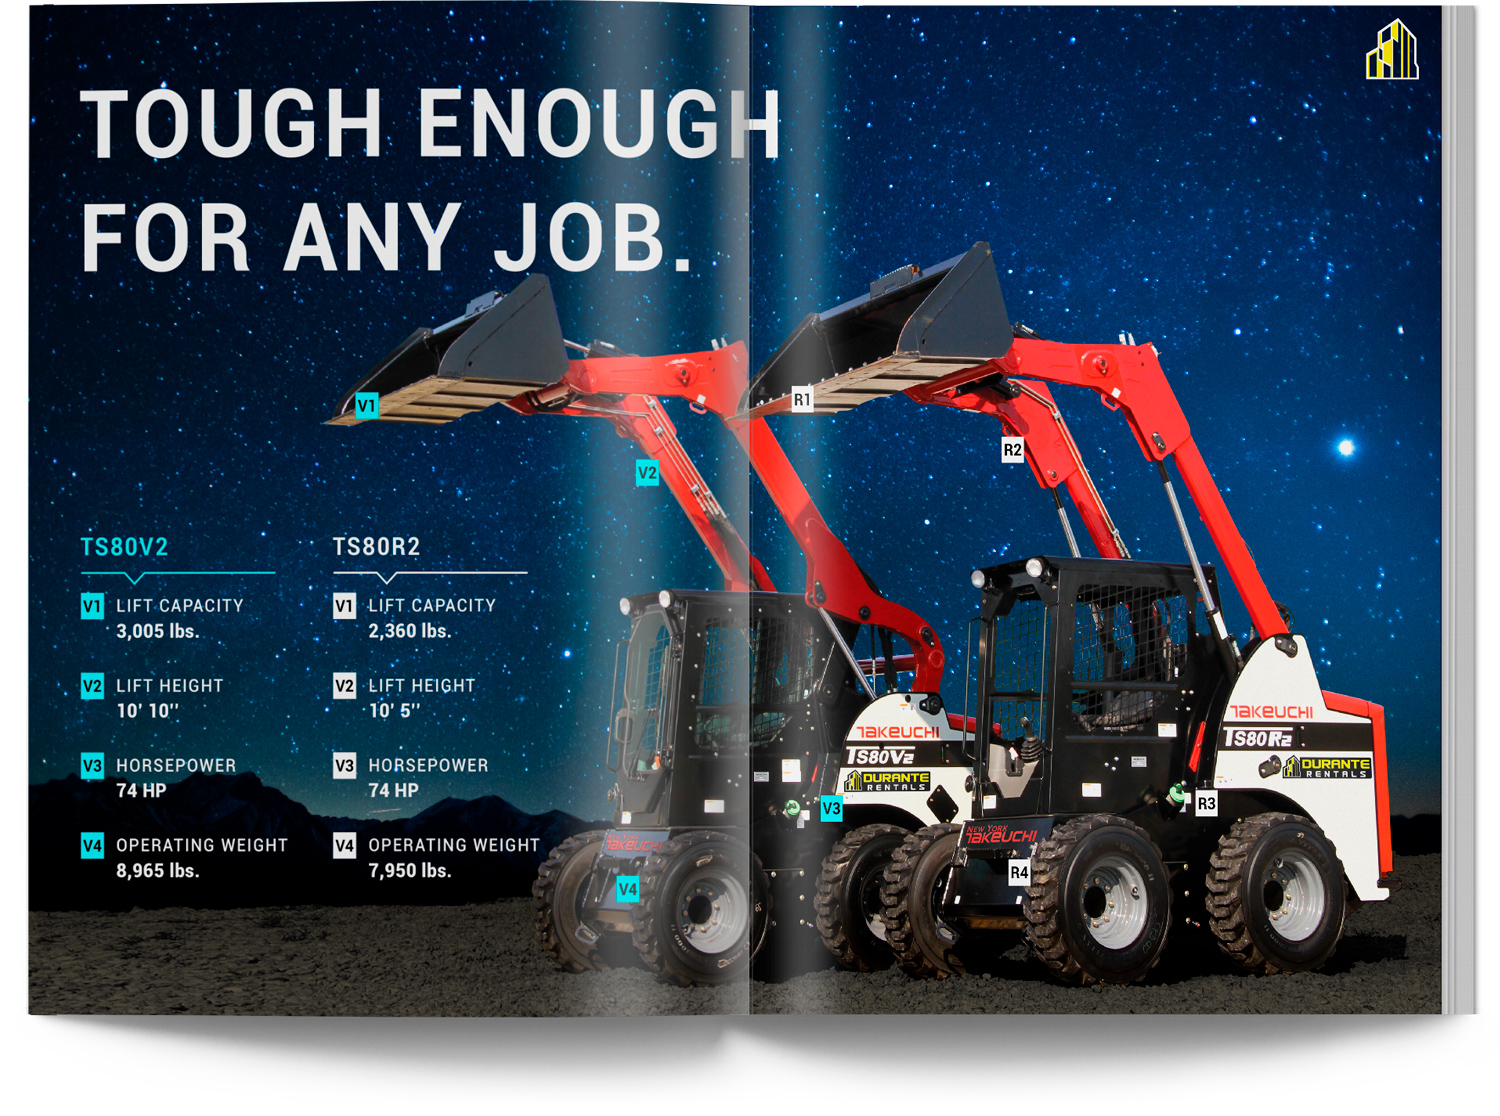 Takeuchi Skid Steer Catalog Spread Page in Space